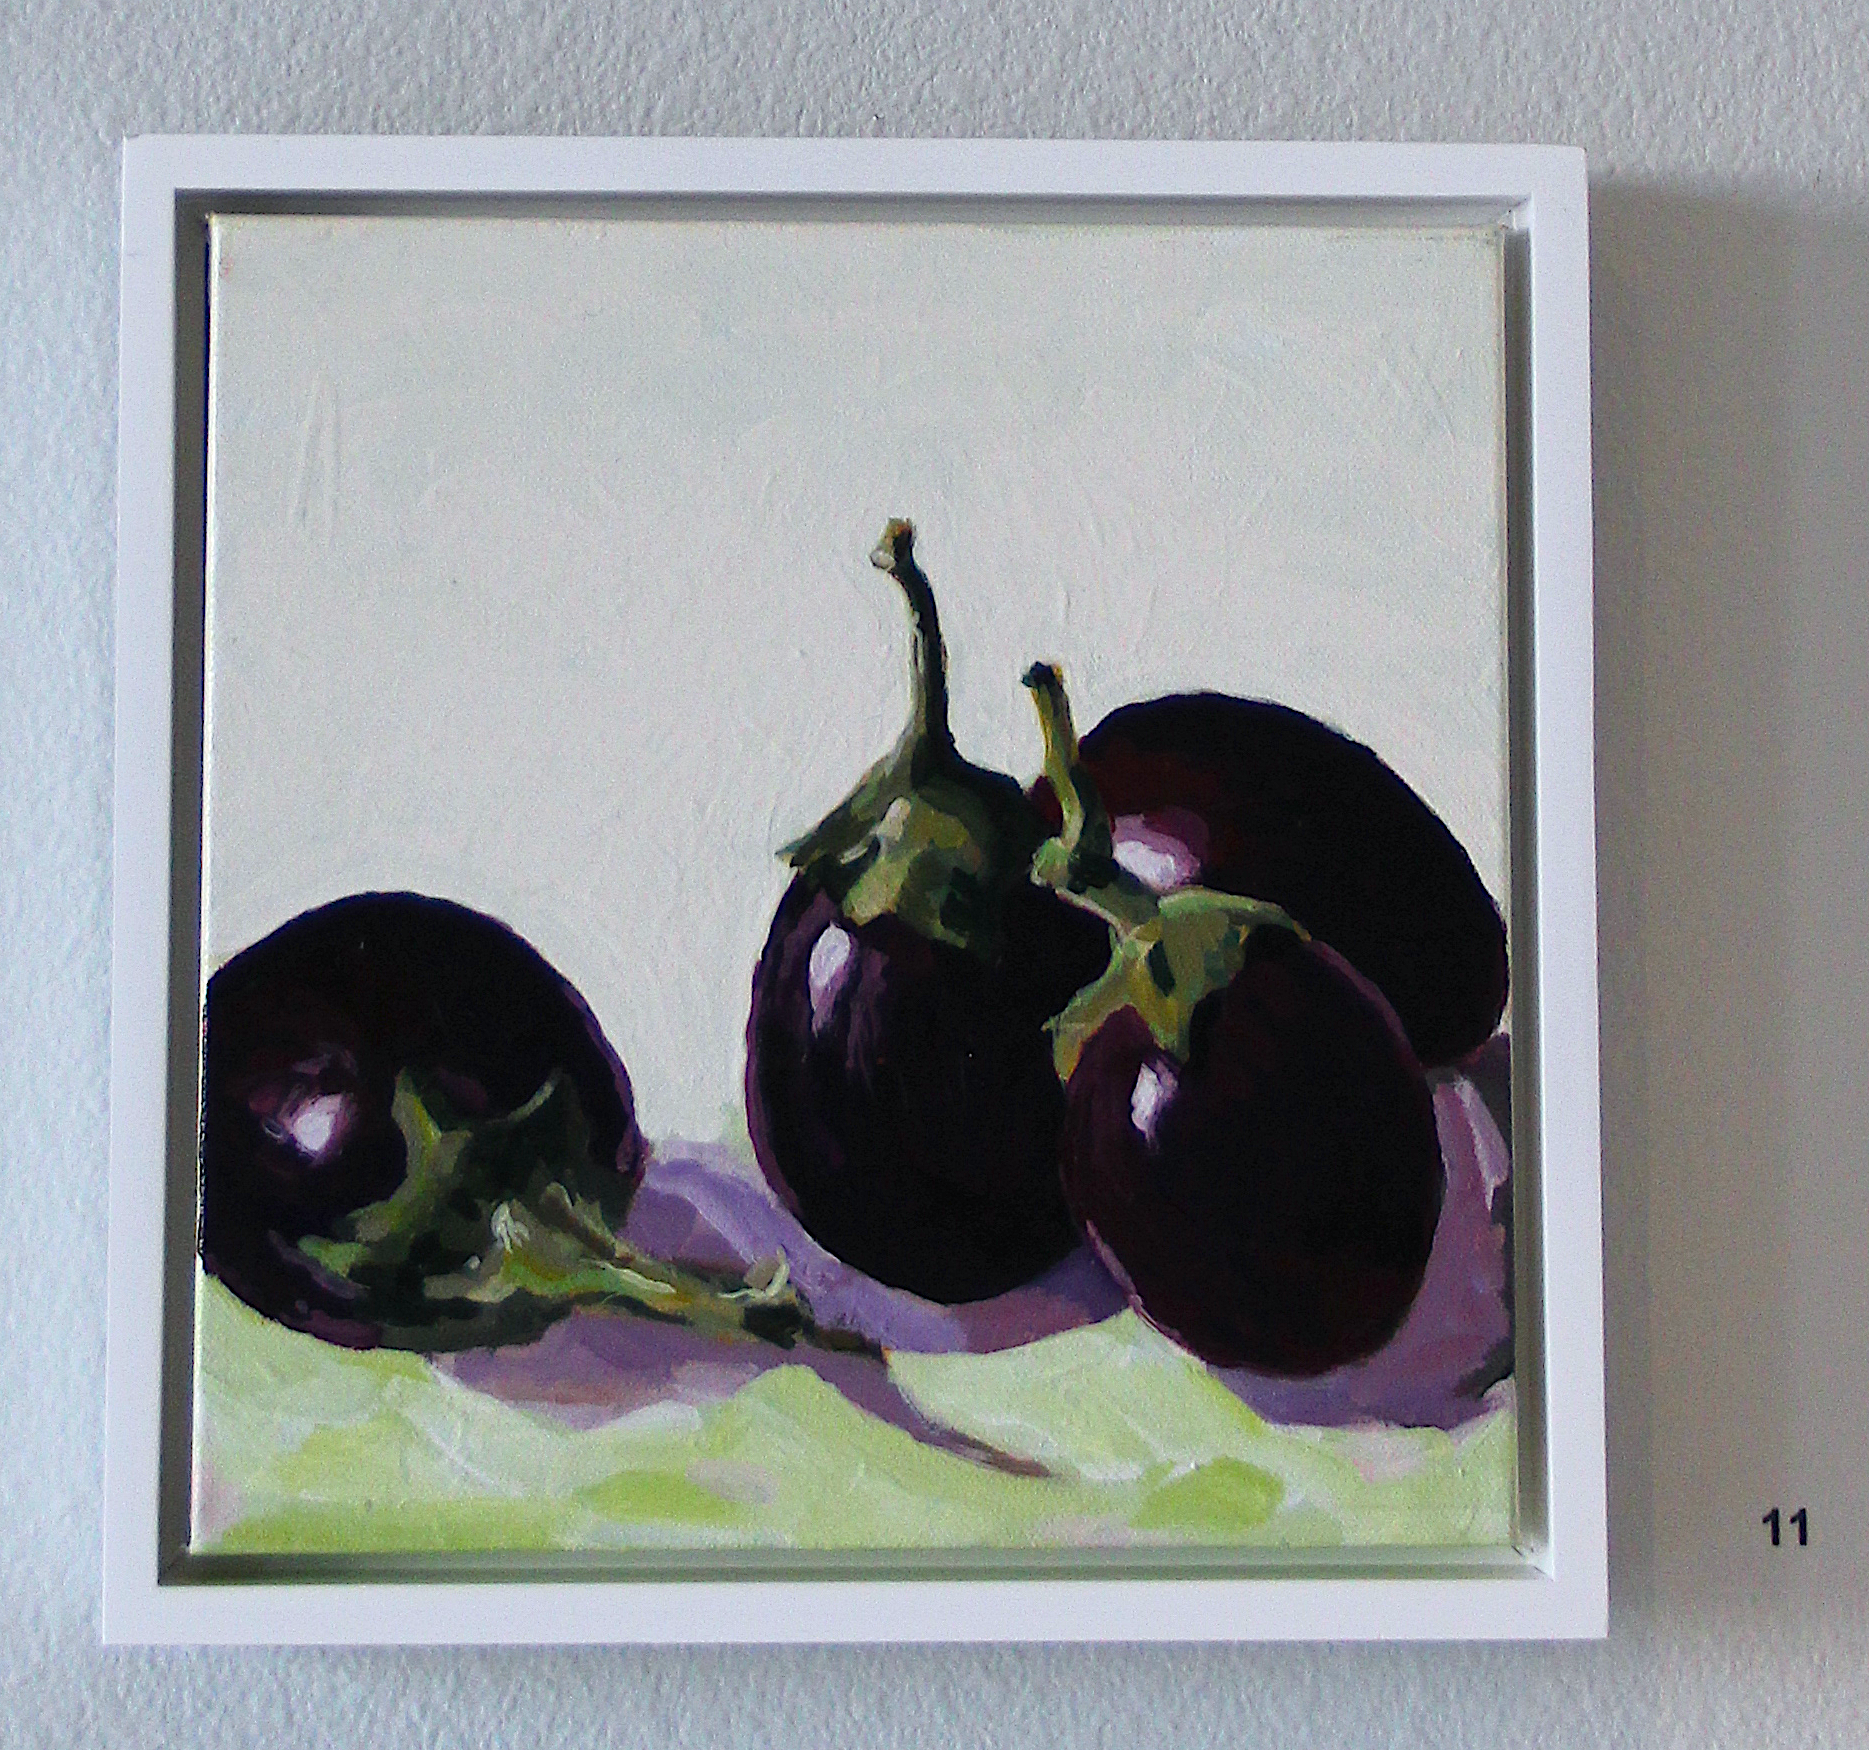 NANCY HIELSCHER, JAPANESE EGGPLANT